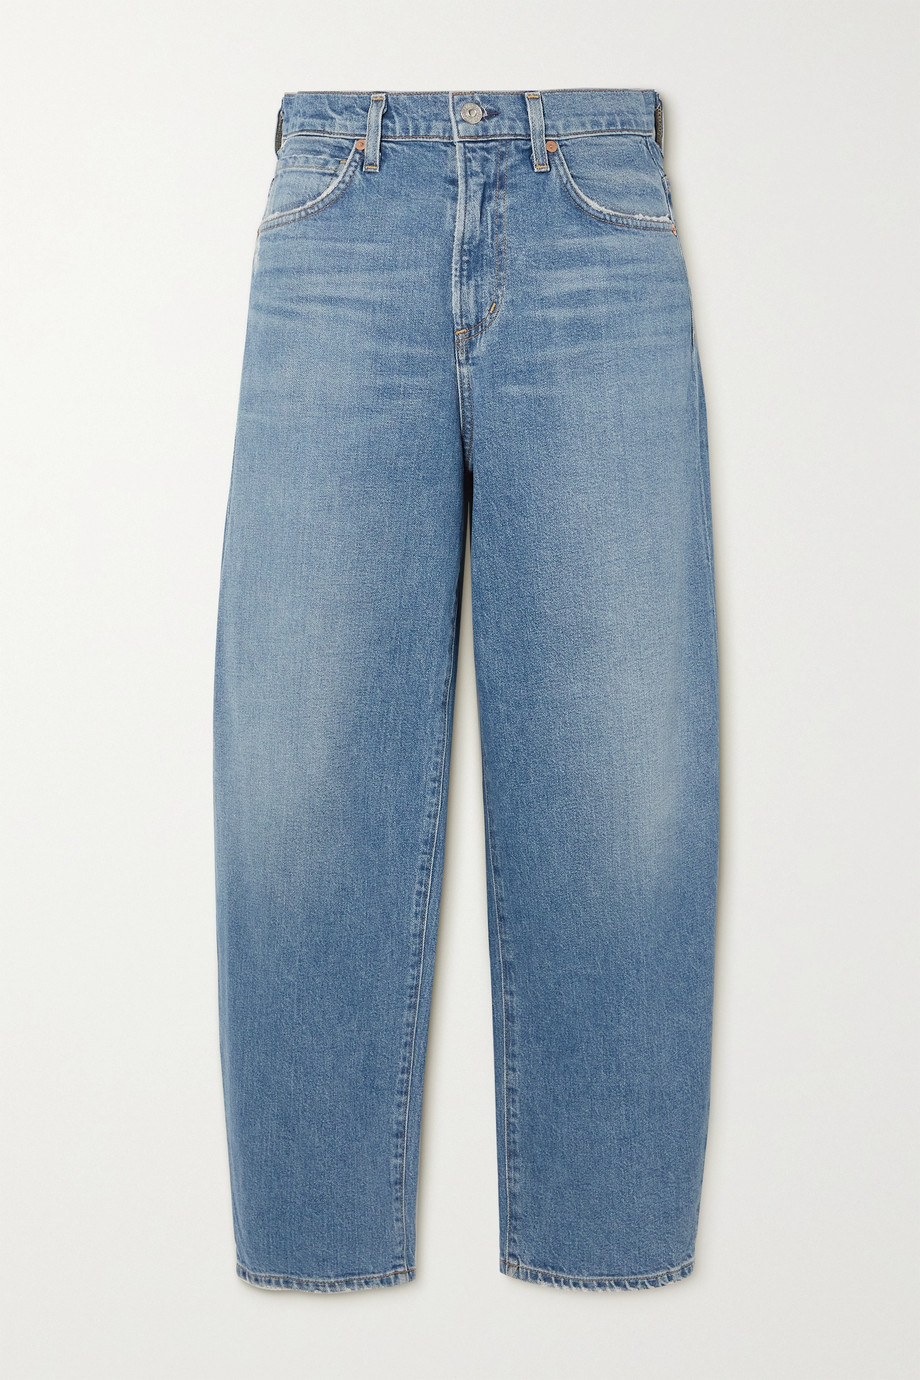 Citizens of Humanity Calista distressed organic high-rise tapered jeans